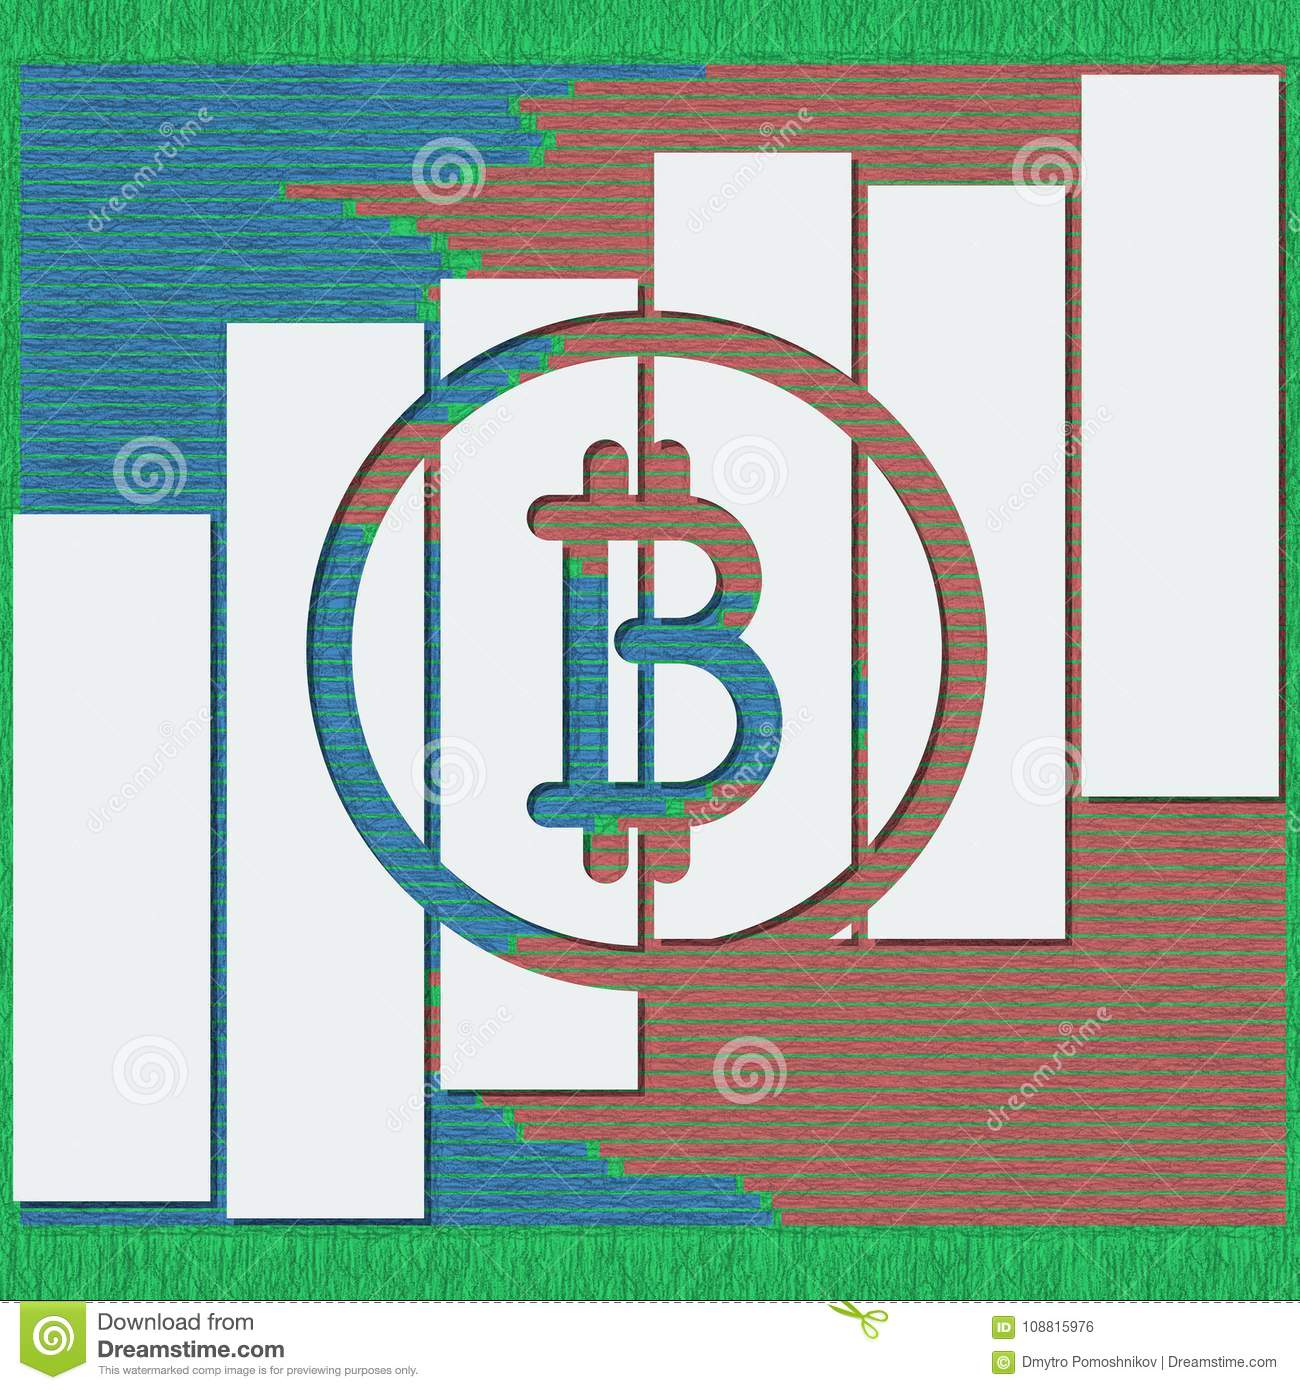 Bitcoin Logotype With Shadows And Lines In Sketch Format  3D